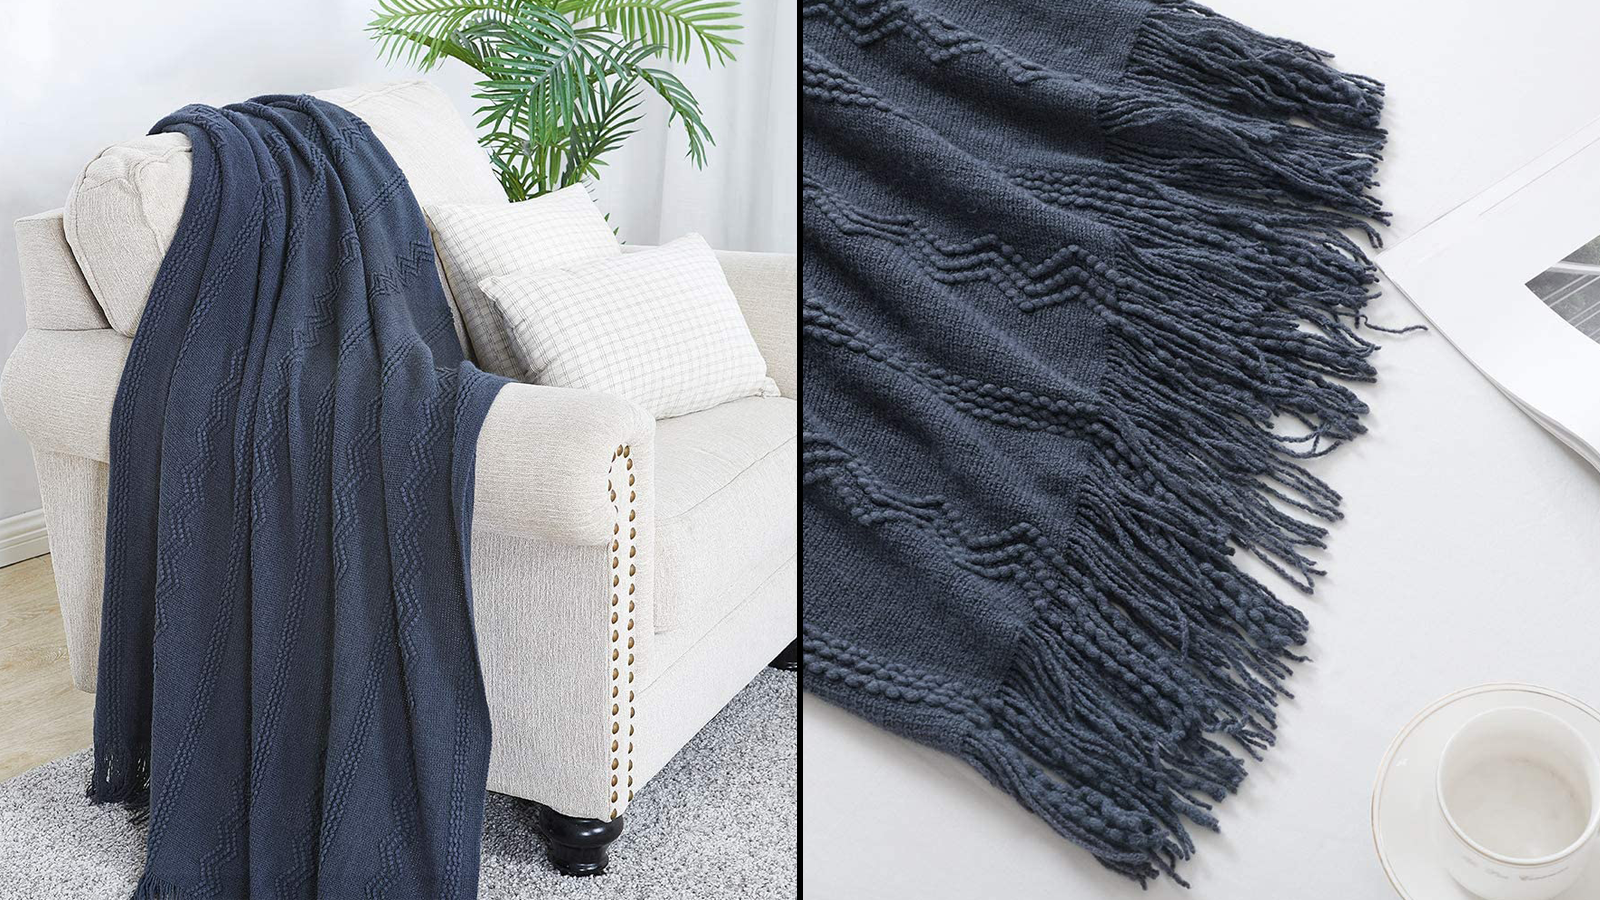 This Geometric Knit Throw Blanket is Exactly What You Need Now that Fall is Here